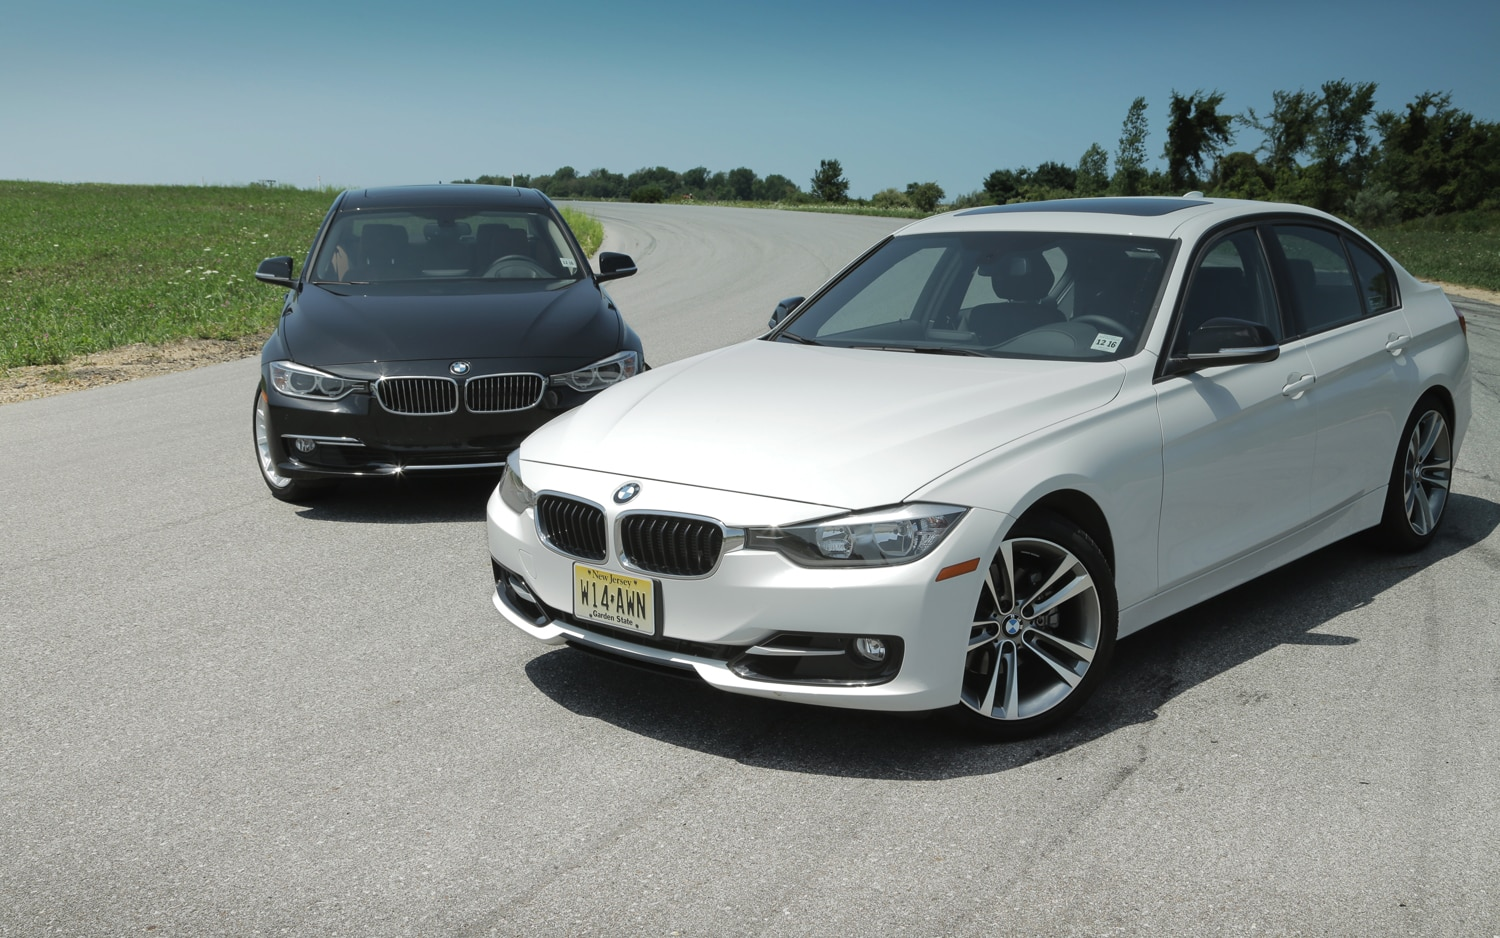 2012 Bmw 328i Luxury Line Four Seasons Update August